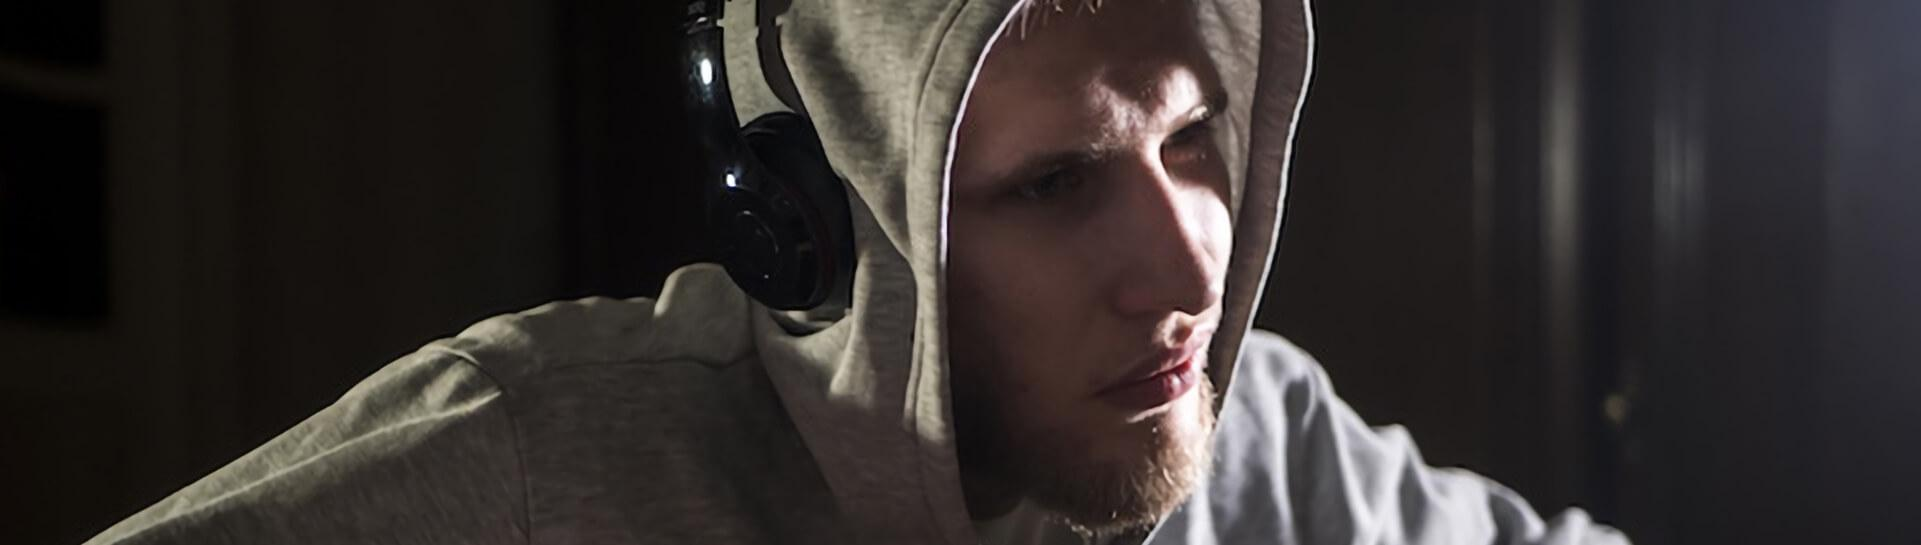 A man in a hoodie wearing headphones